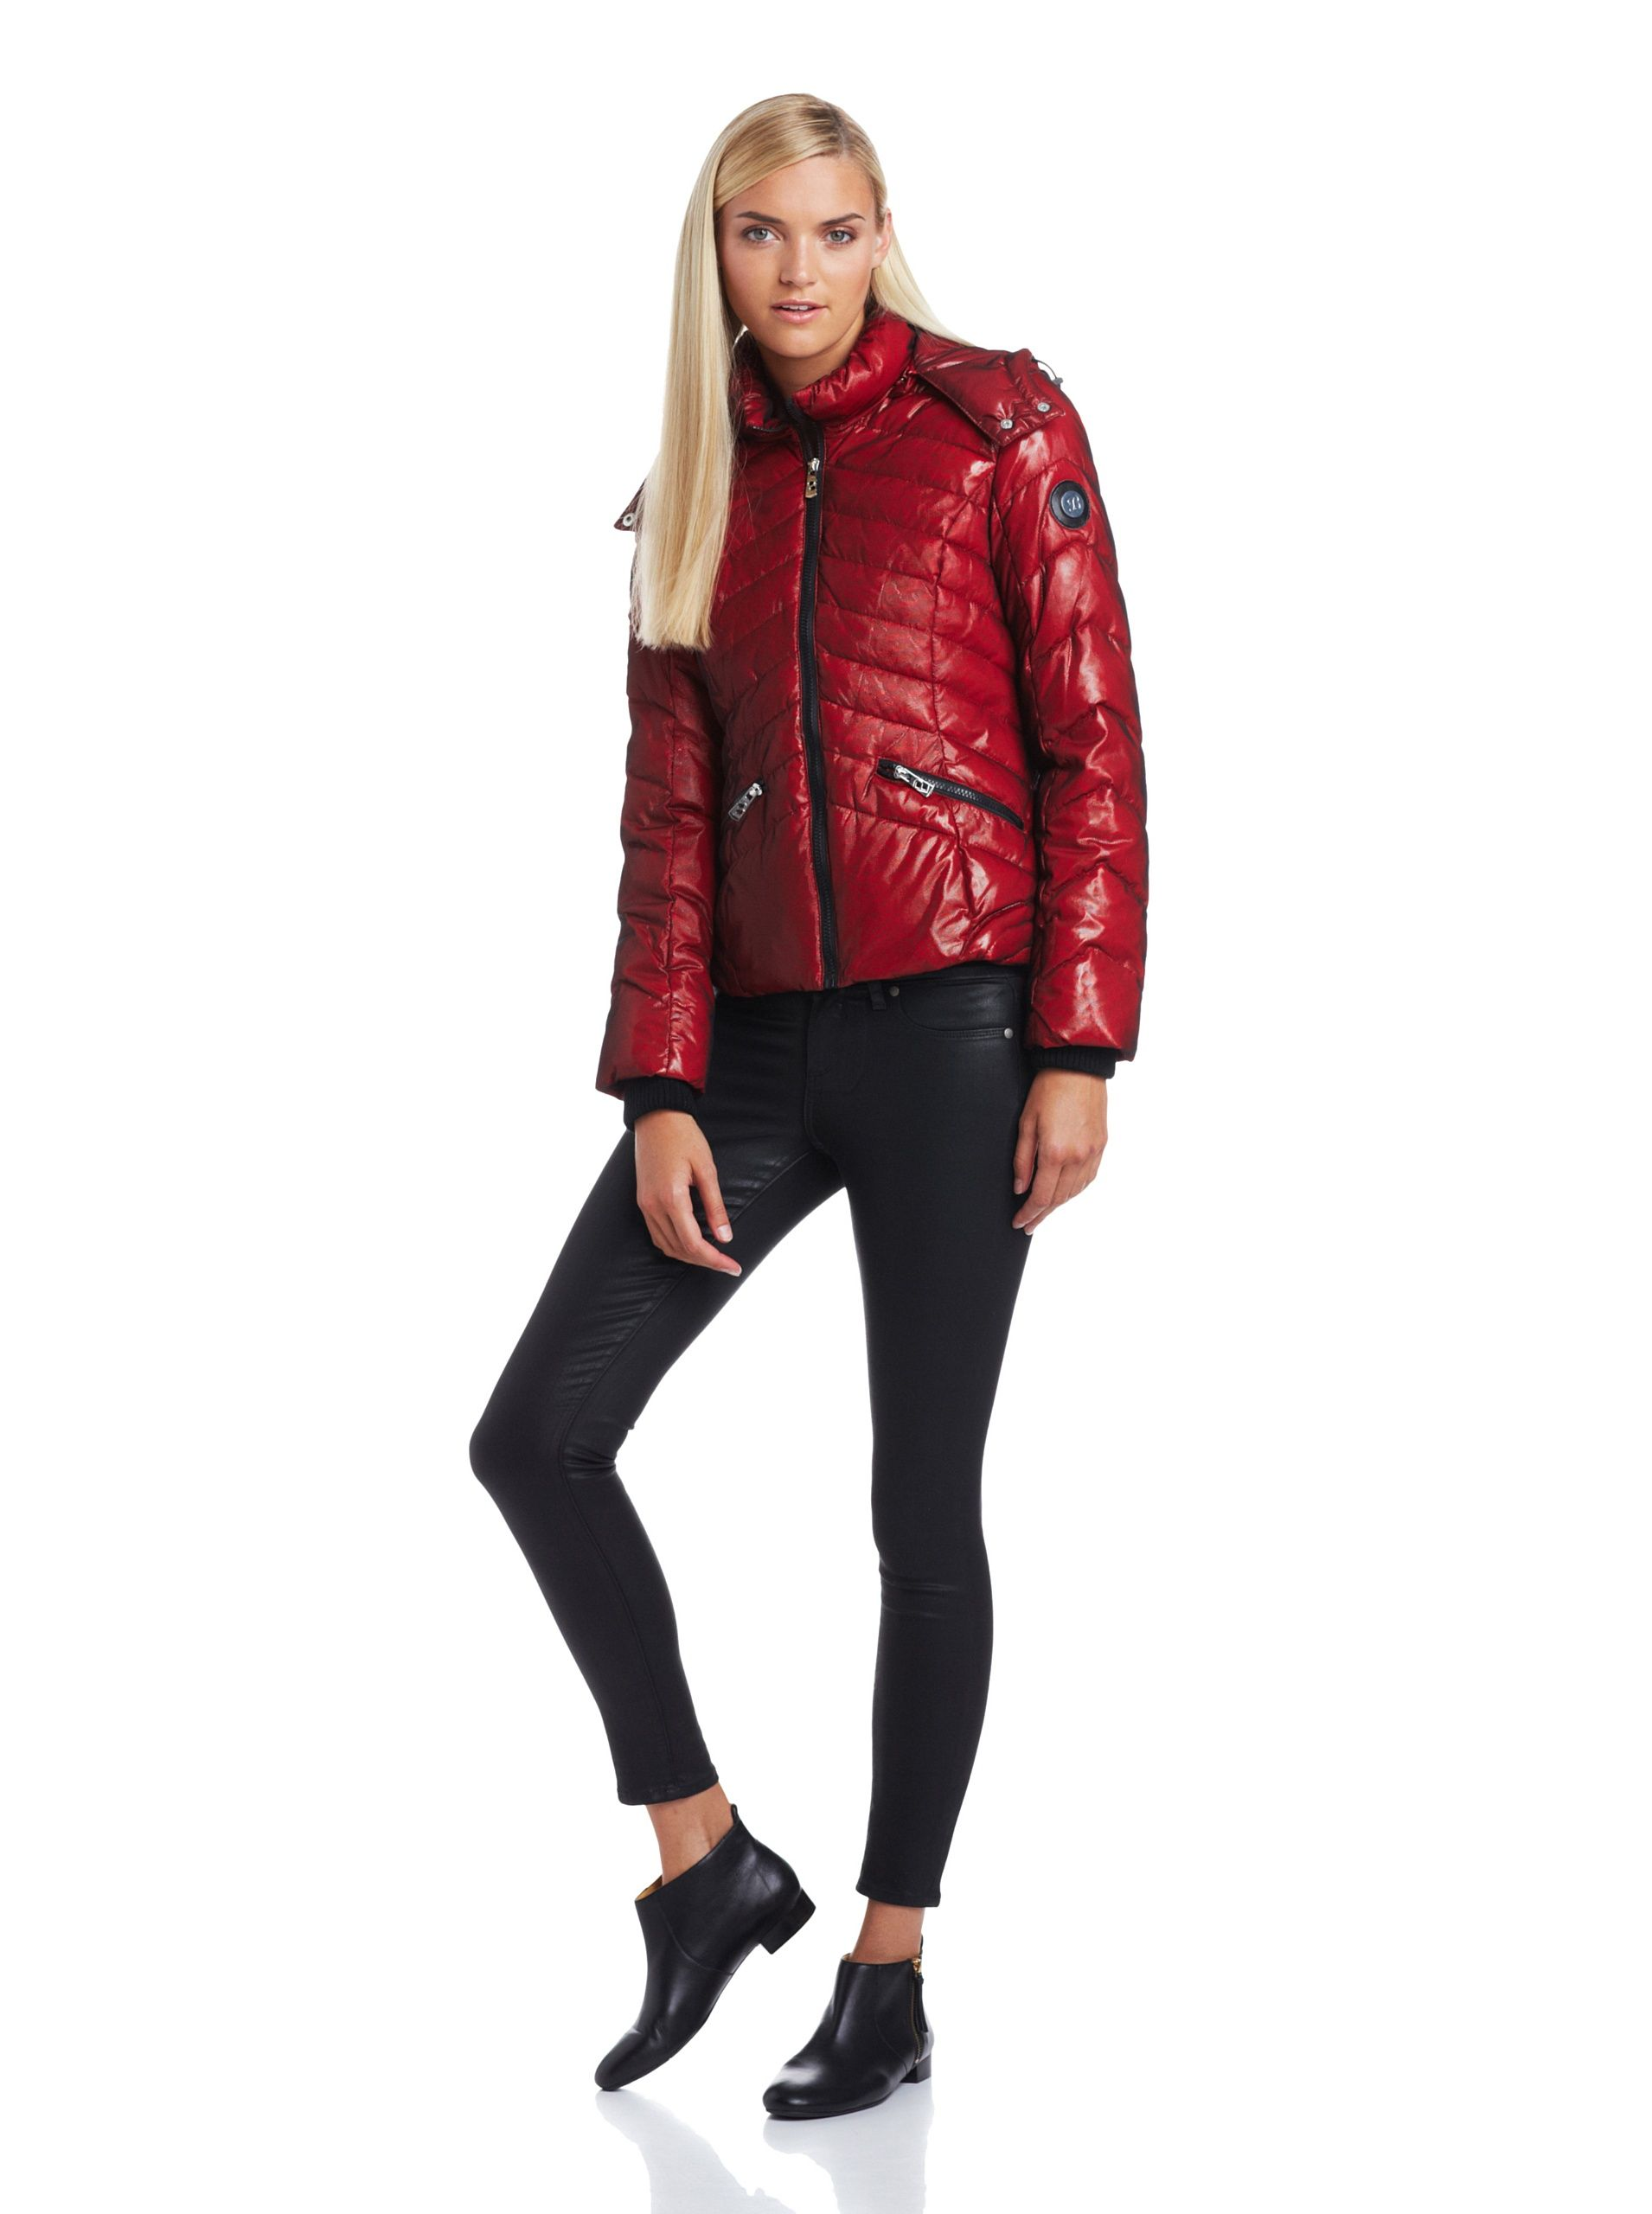 Buffalo David Bitton Women S Zip Up Puffer Oxblood Channel Quilted Coat With Shiny Mesh Overlay Zip Closure Stand Collar With Rem Puffer Women Quilted Coat [ 2560 x 1910 Pixel ]